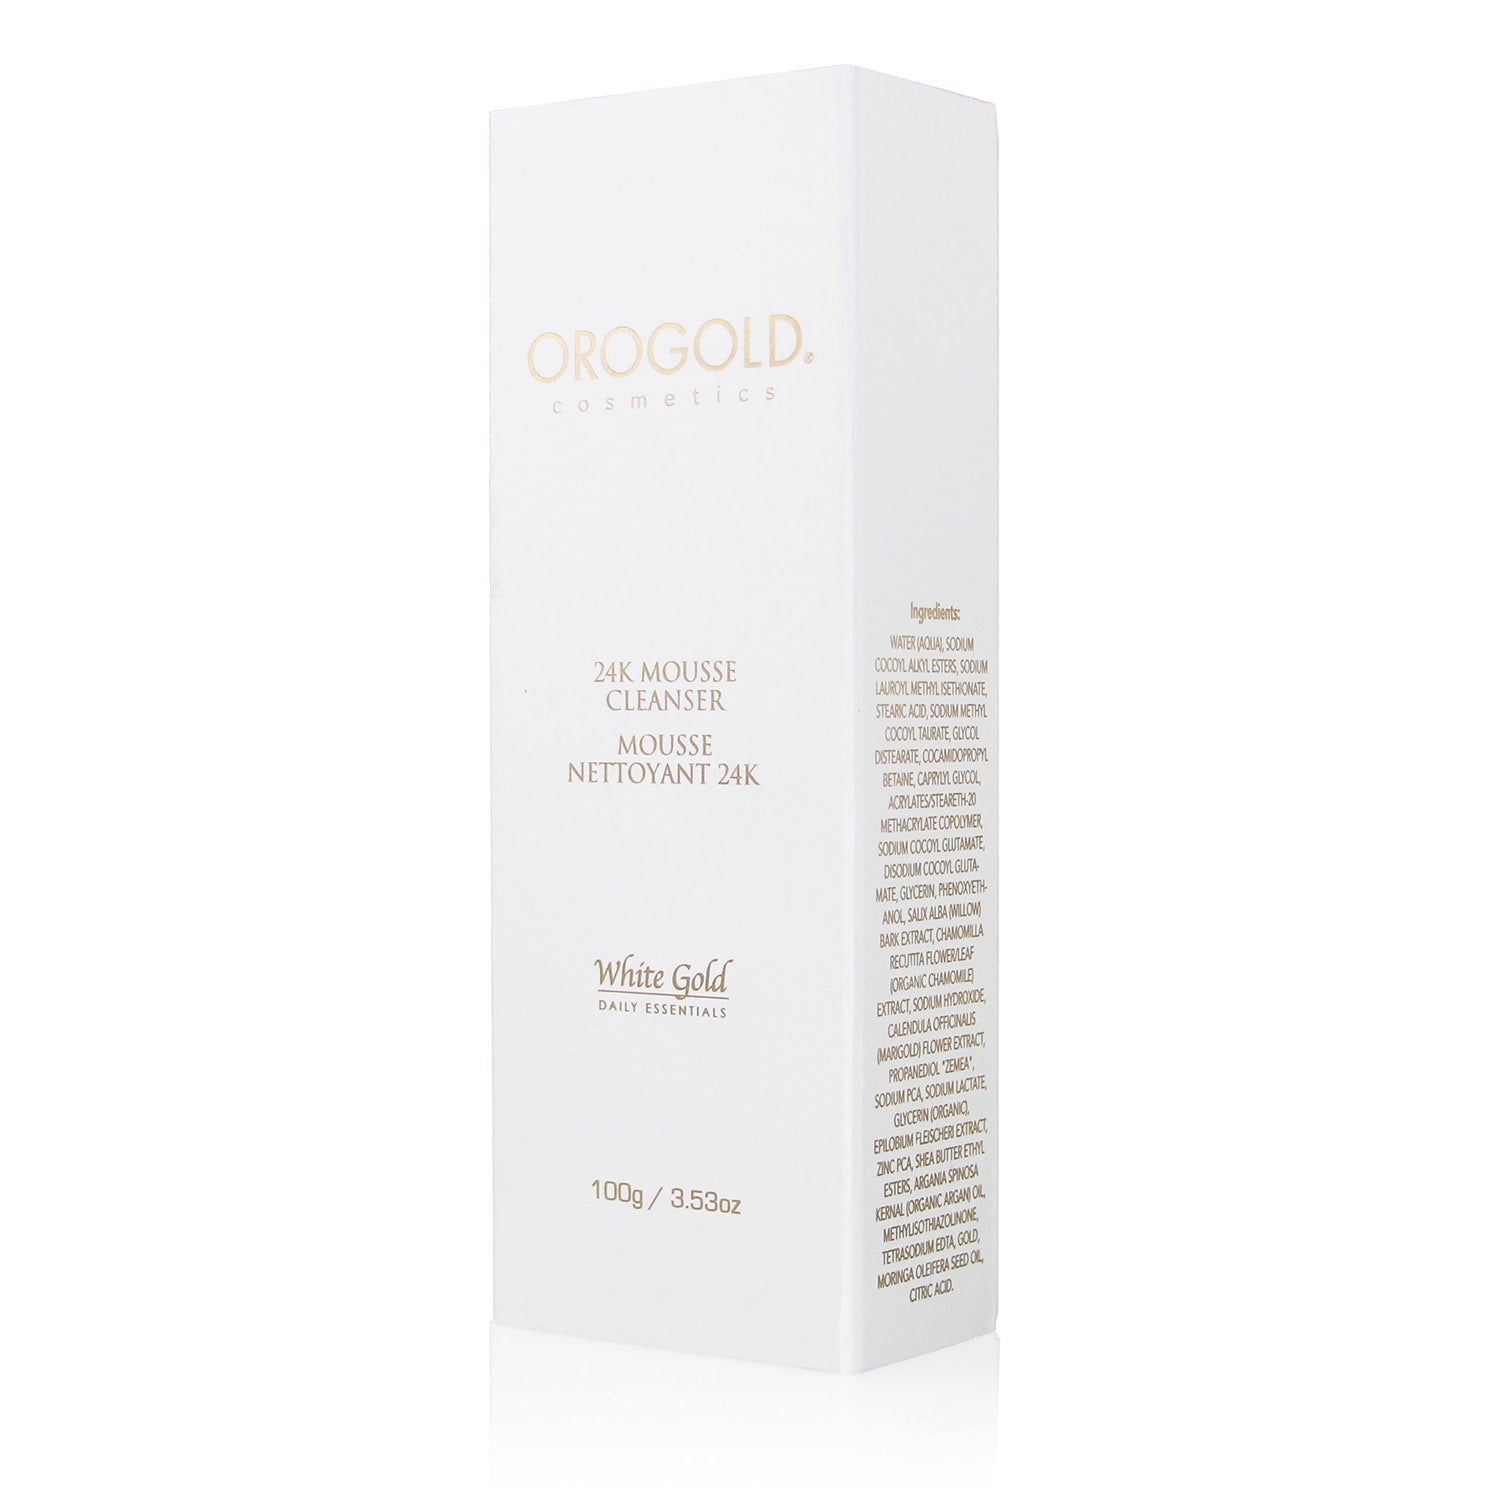 orogold white gold 24k mousse mild facial cleanser